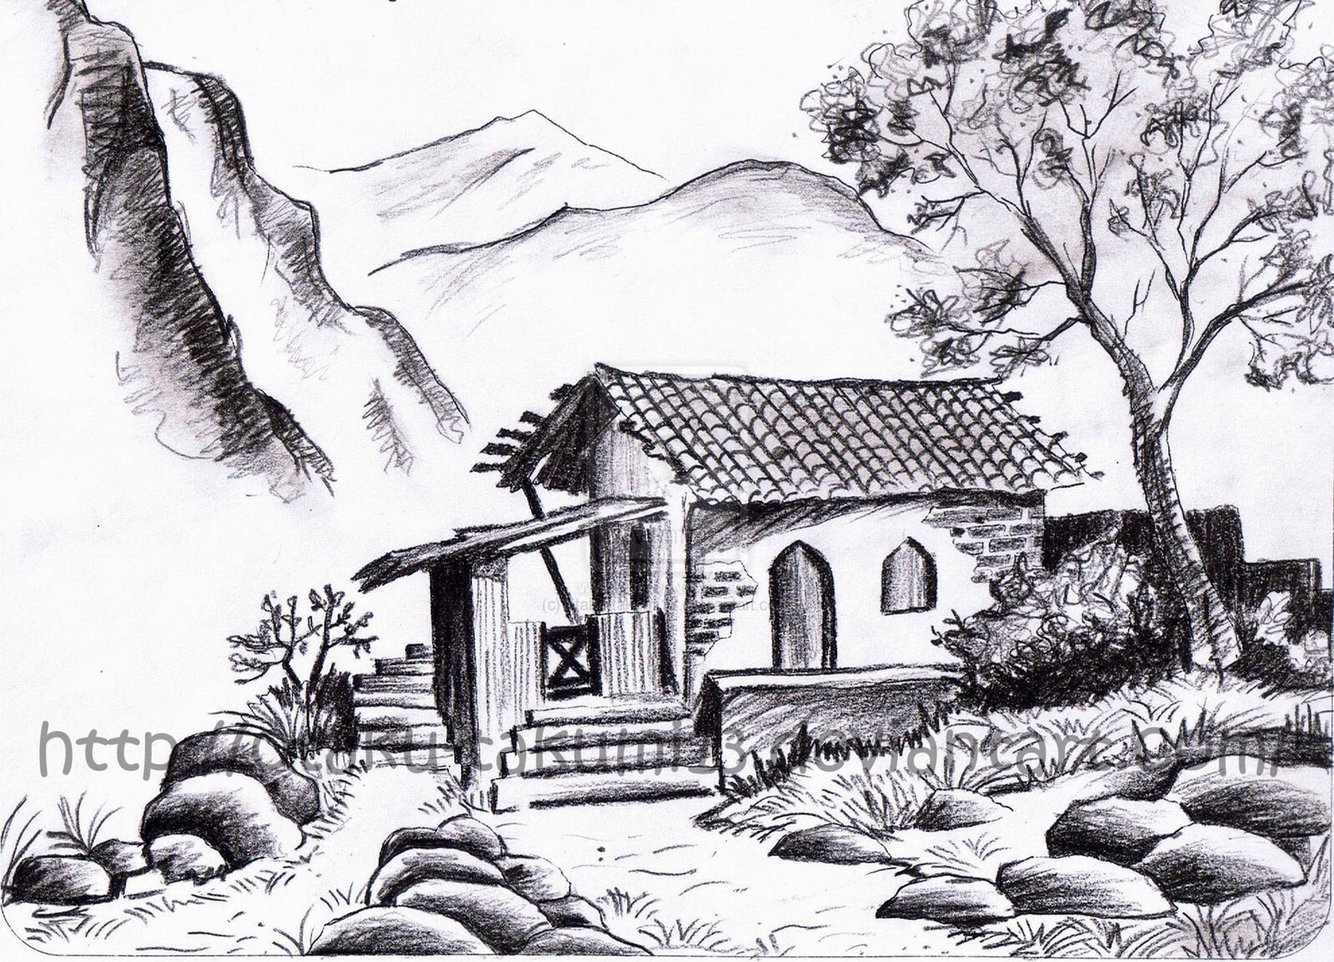 Drawn scenic landscape Pencil Pencil Pencil Landscapes Drawings